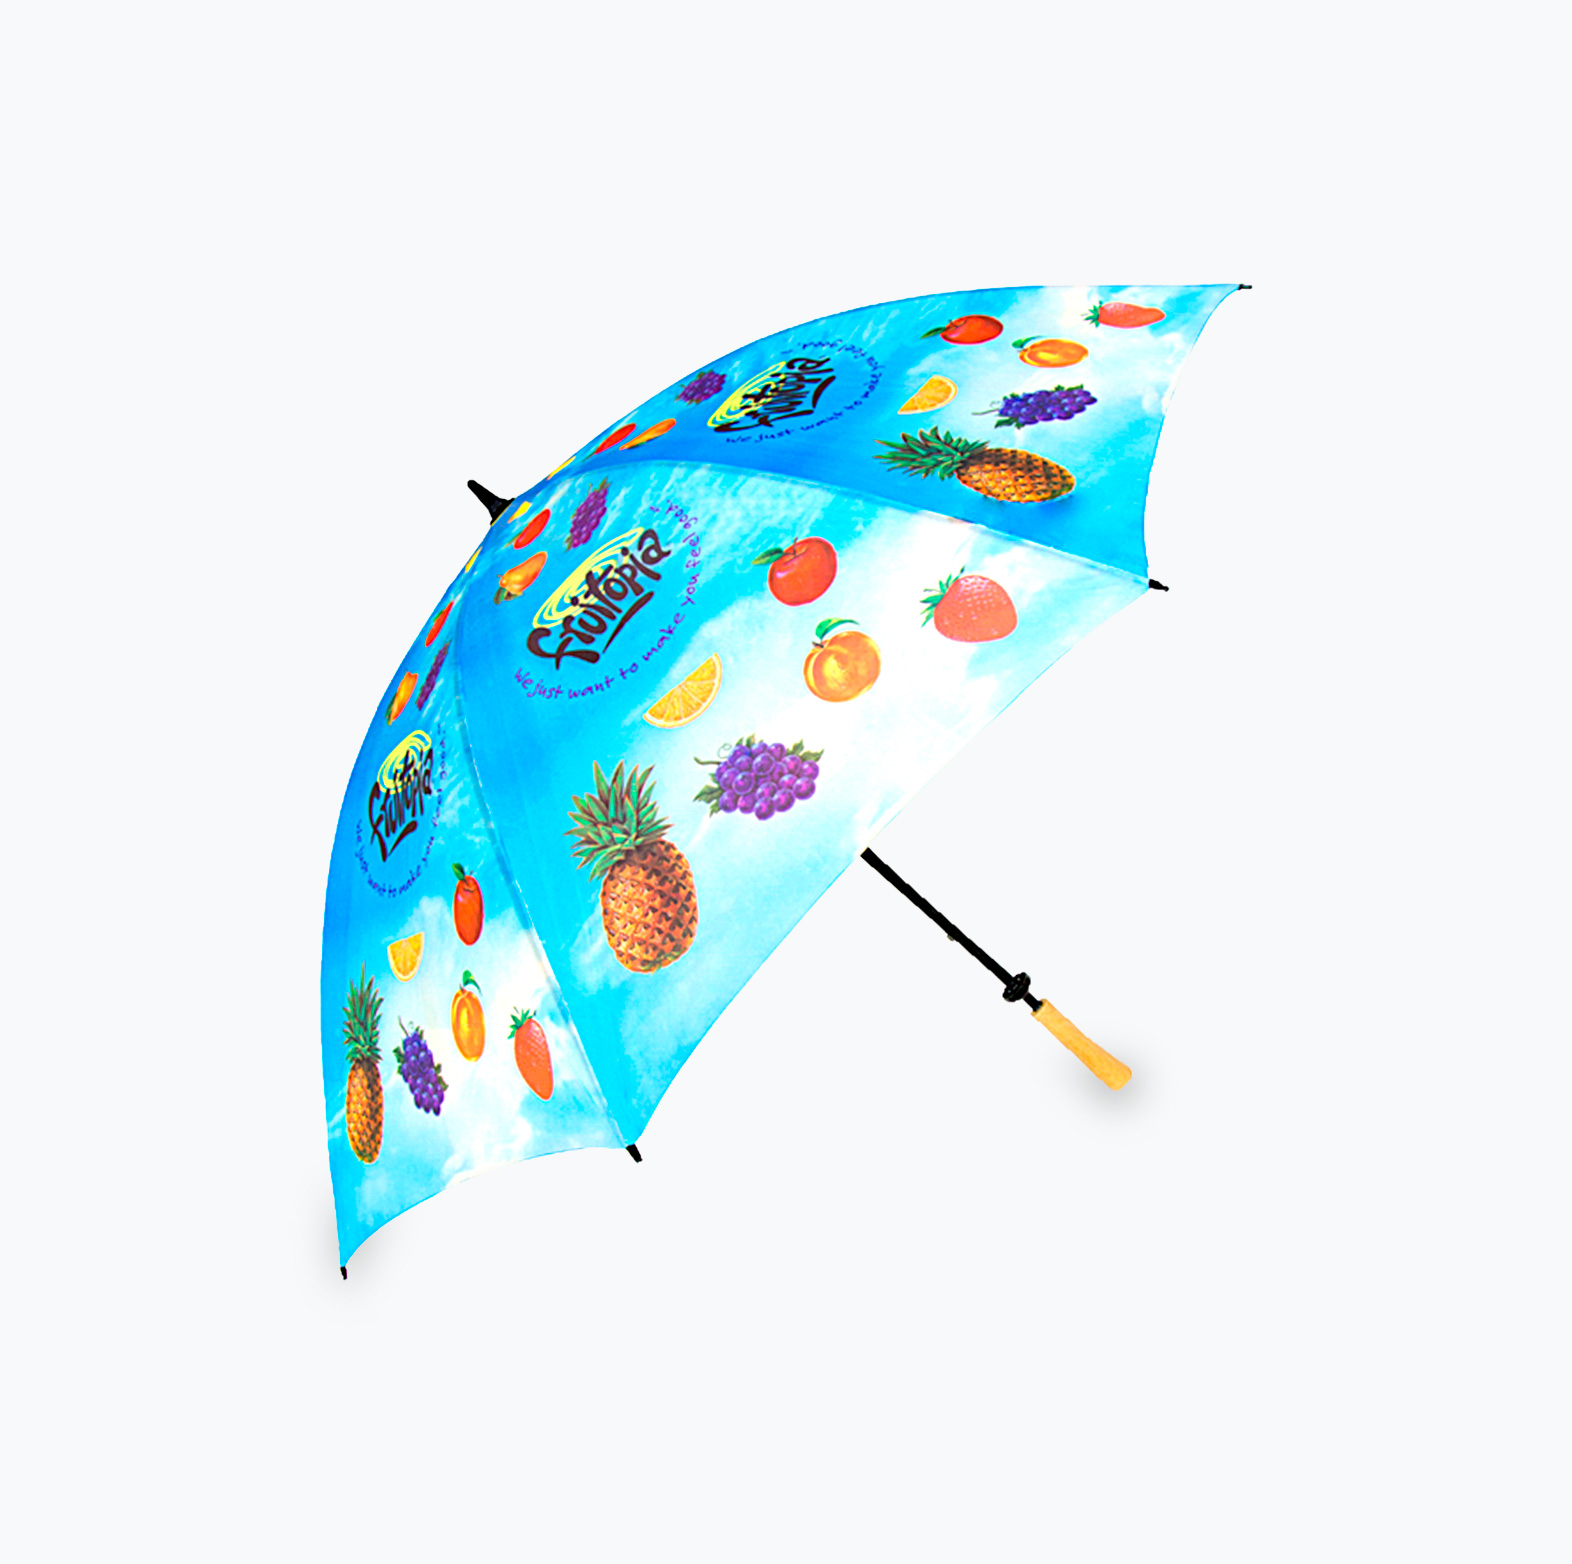 umbrellas-sku-62afg